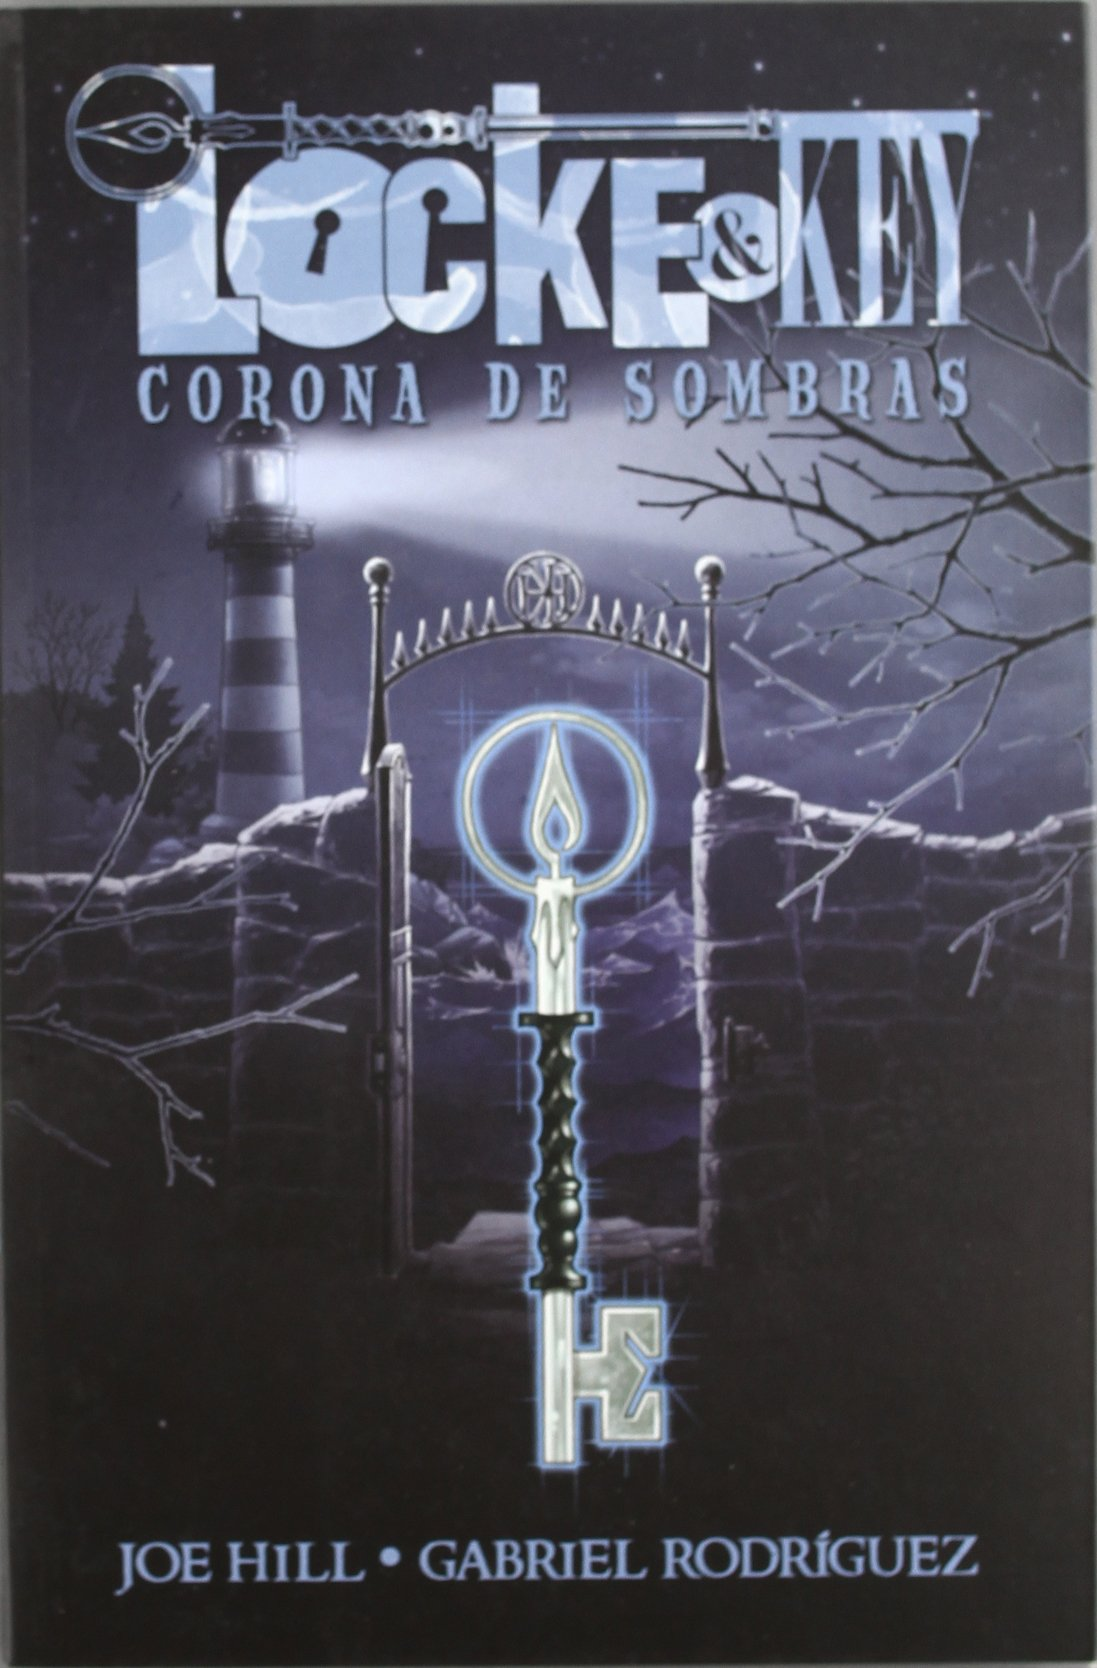 Locke And Key 03 Cult Comics Hill Joe Guión Rodriguez Gabria Dib 9788490240168 Books